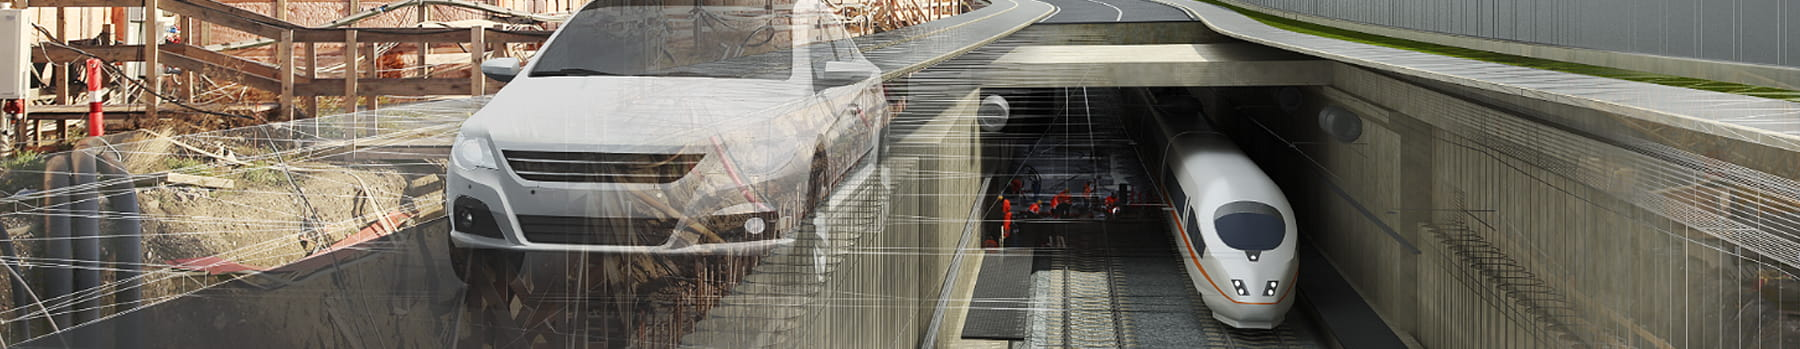 Visualization_HvidovreTunnel_1800x349